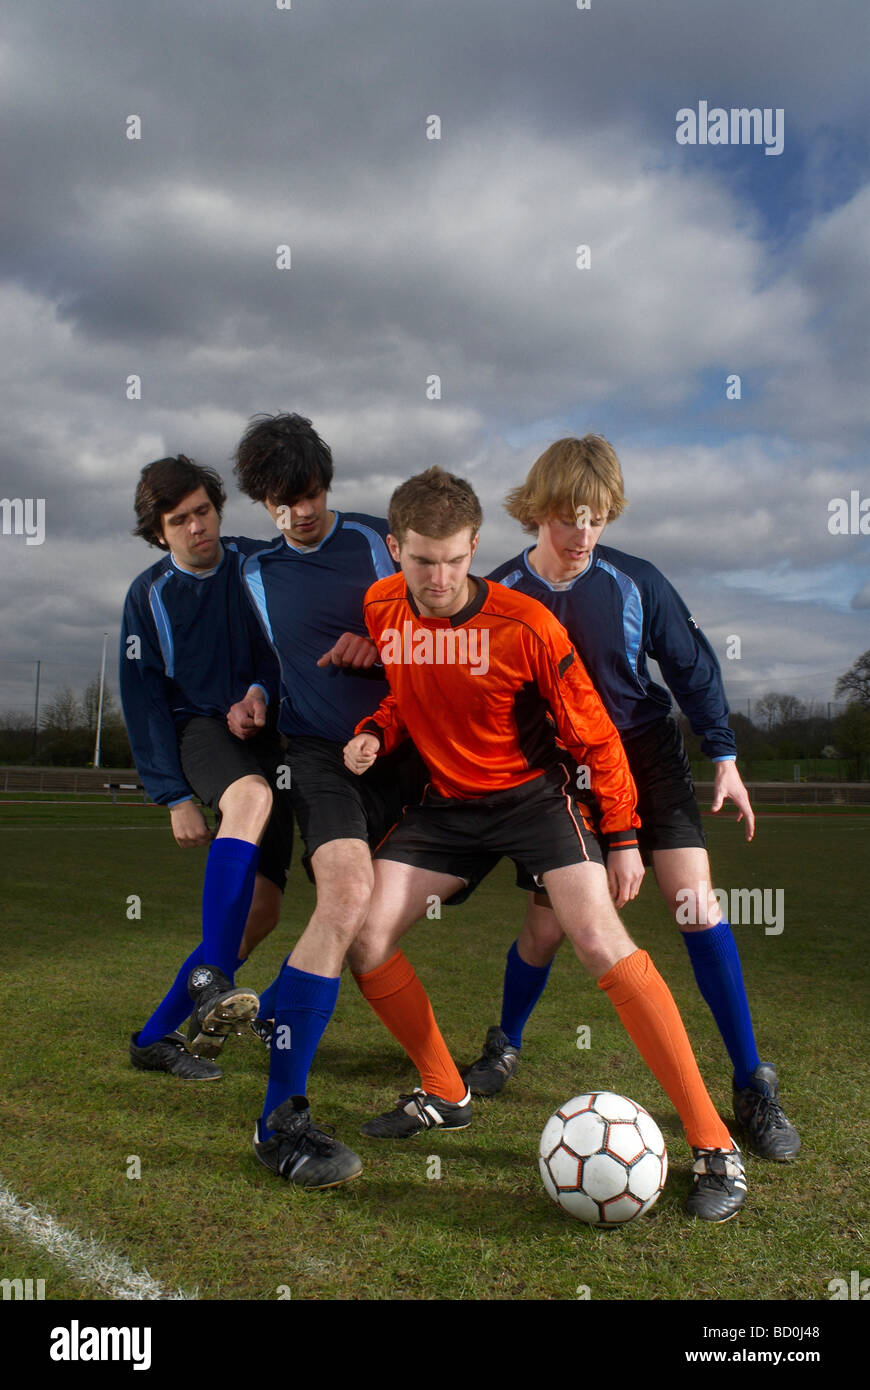 footballer surrounded by opposition - Stock Image